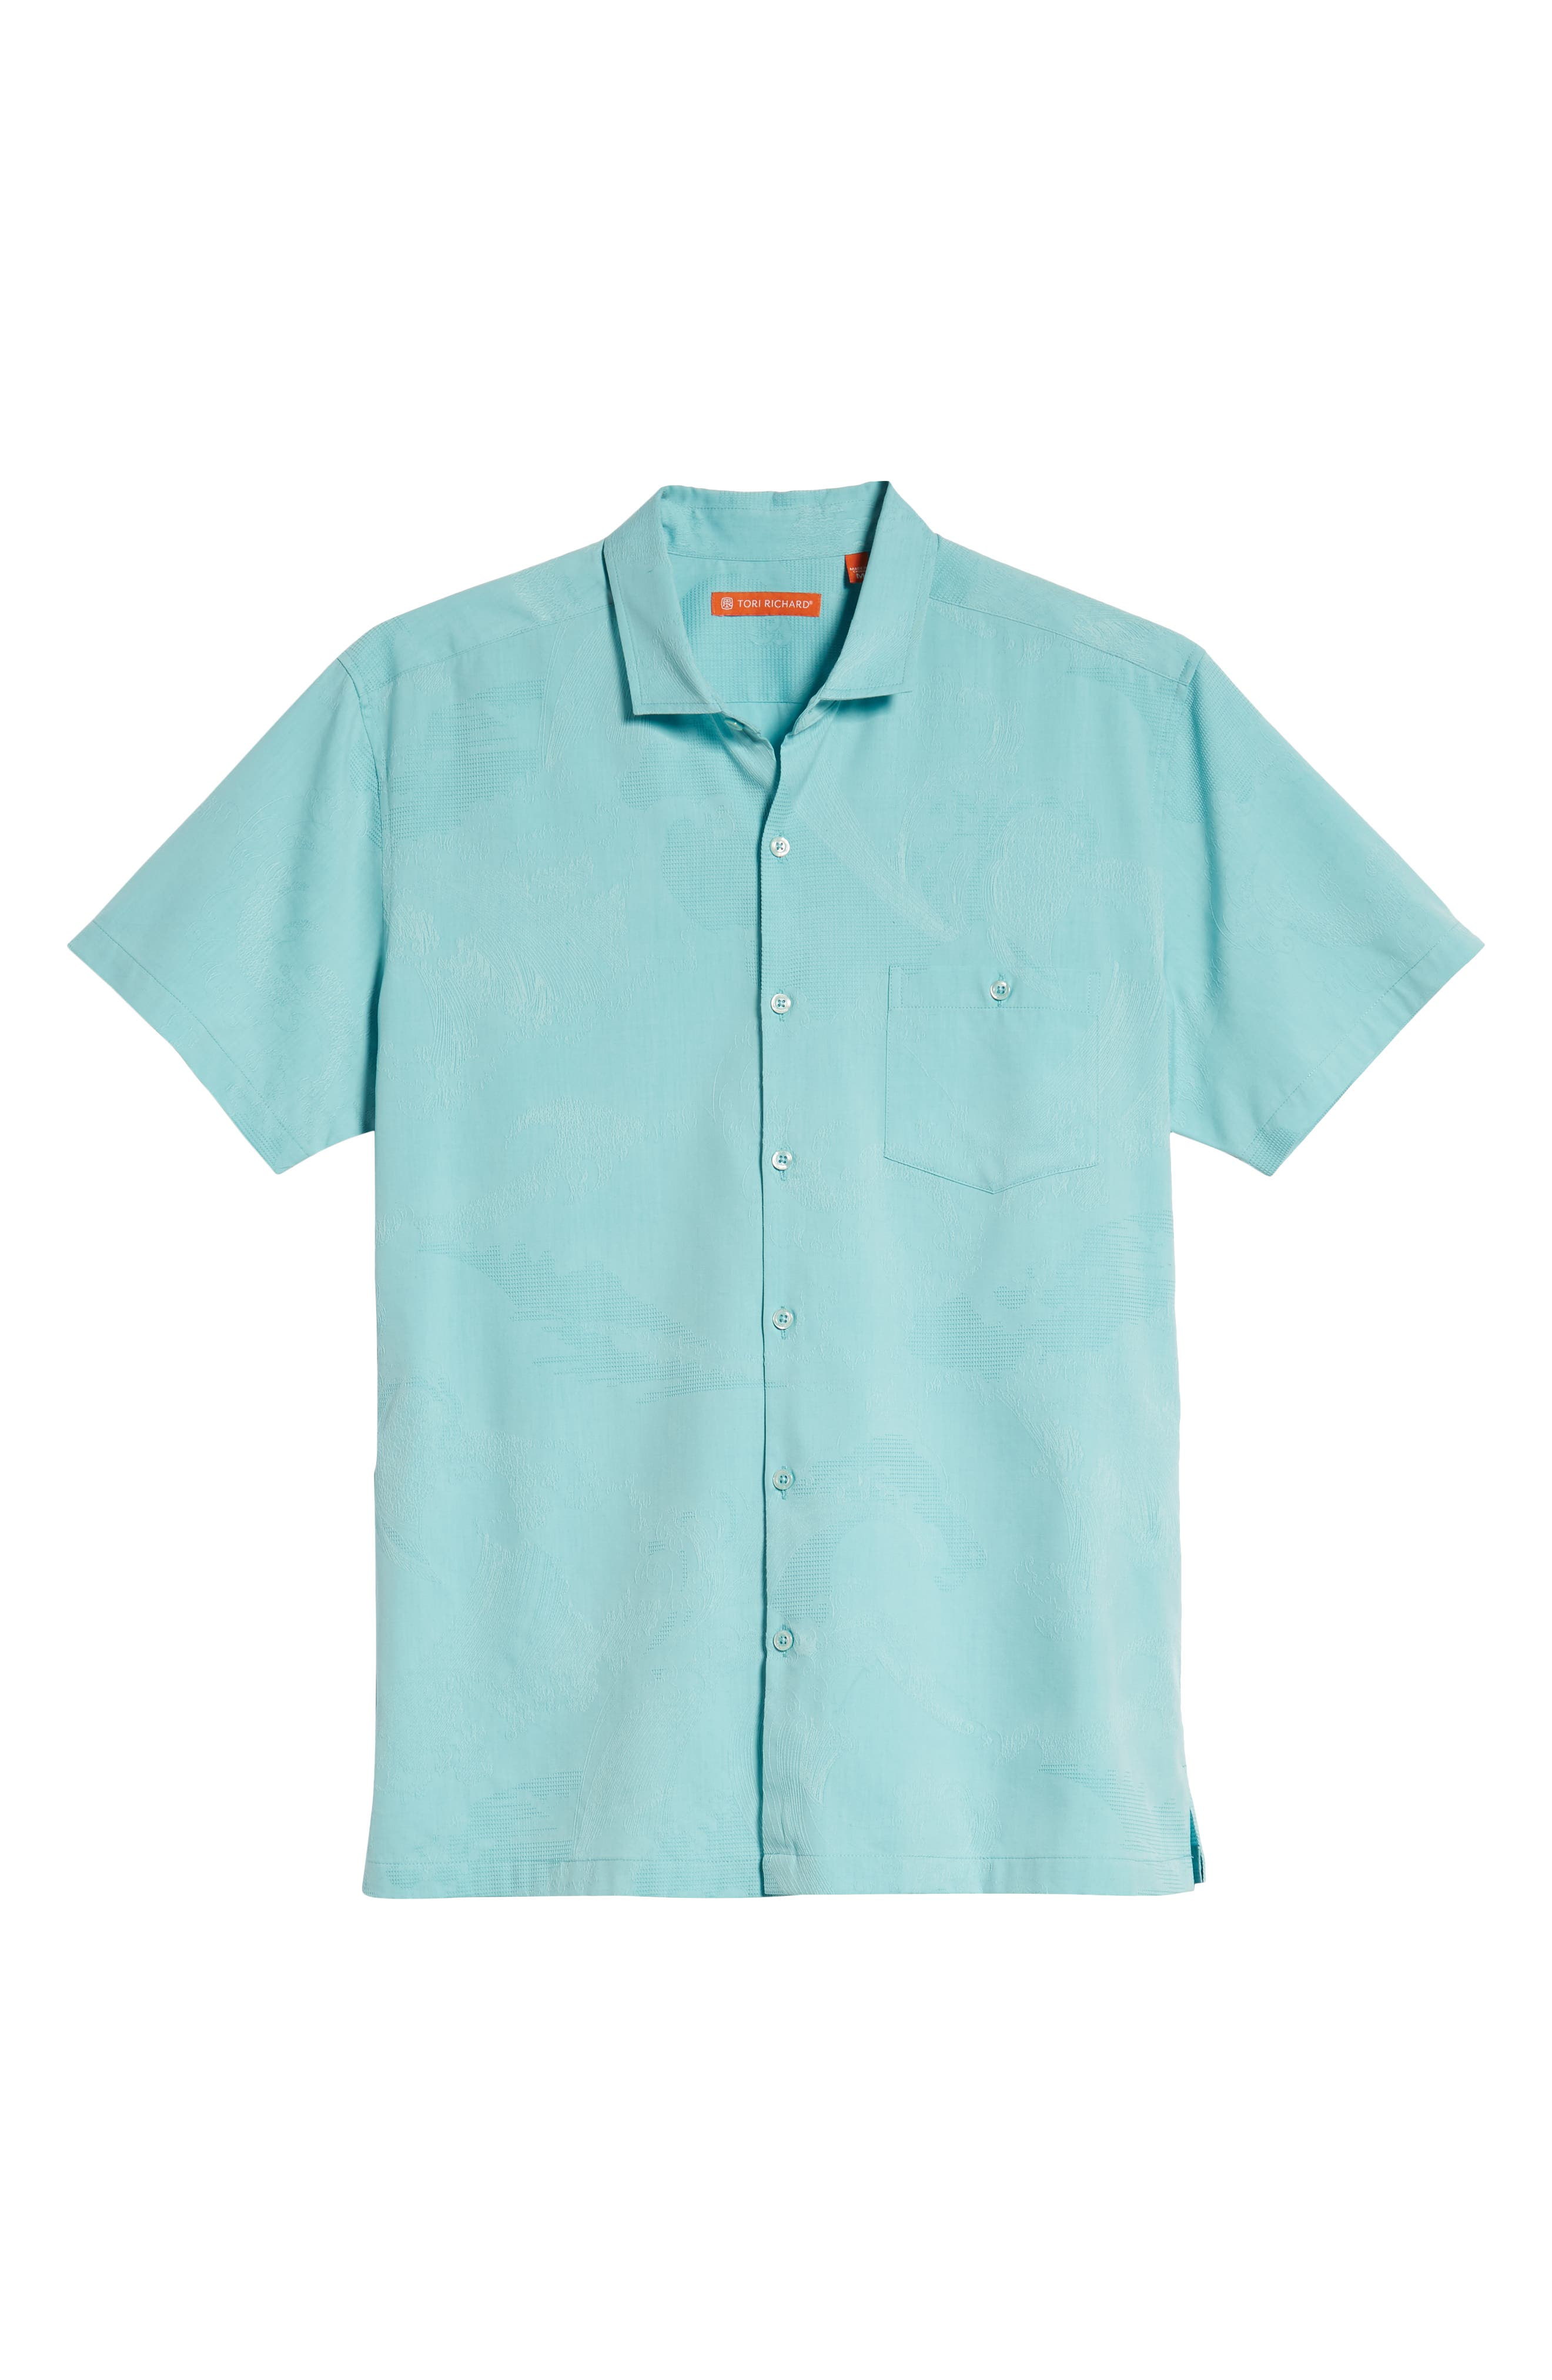 Seas the Day Trim Fit Camp Shirt,                             Alternate thumbnail 5, color,                             Surf